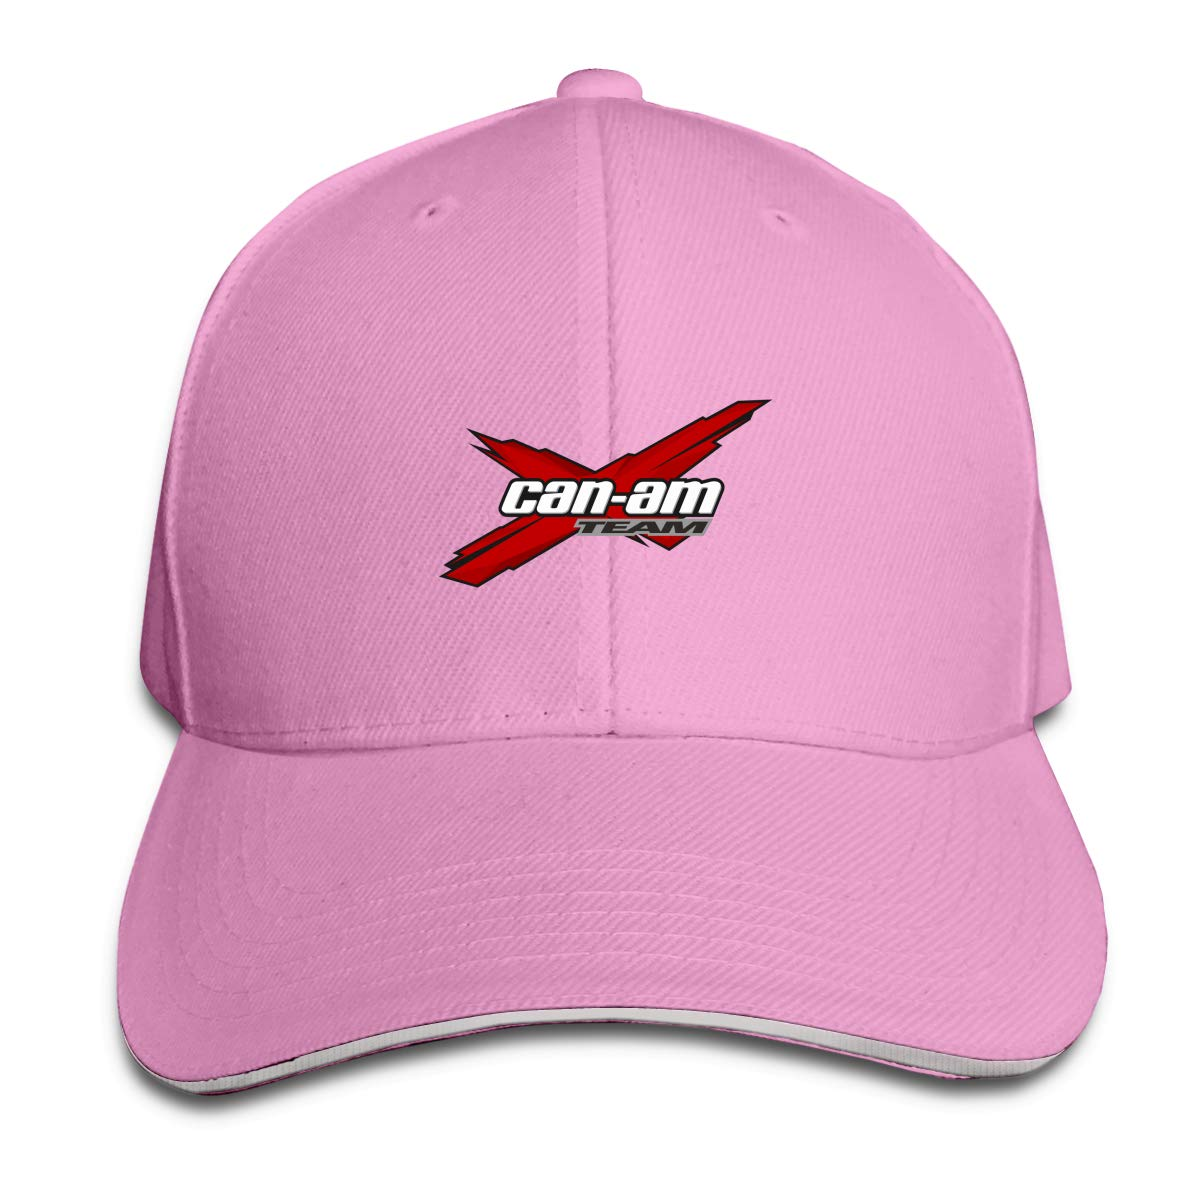 Can Am Team Unisex Twill Adjustable Sports Hat